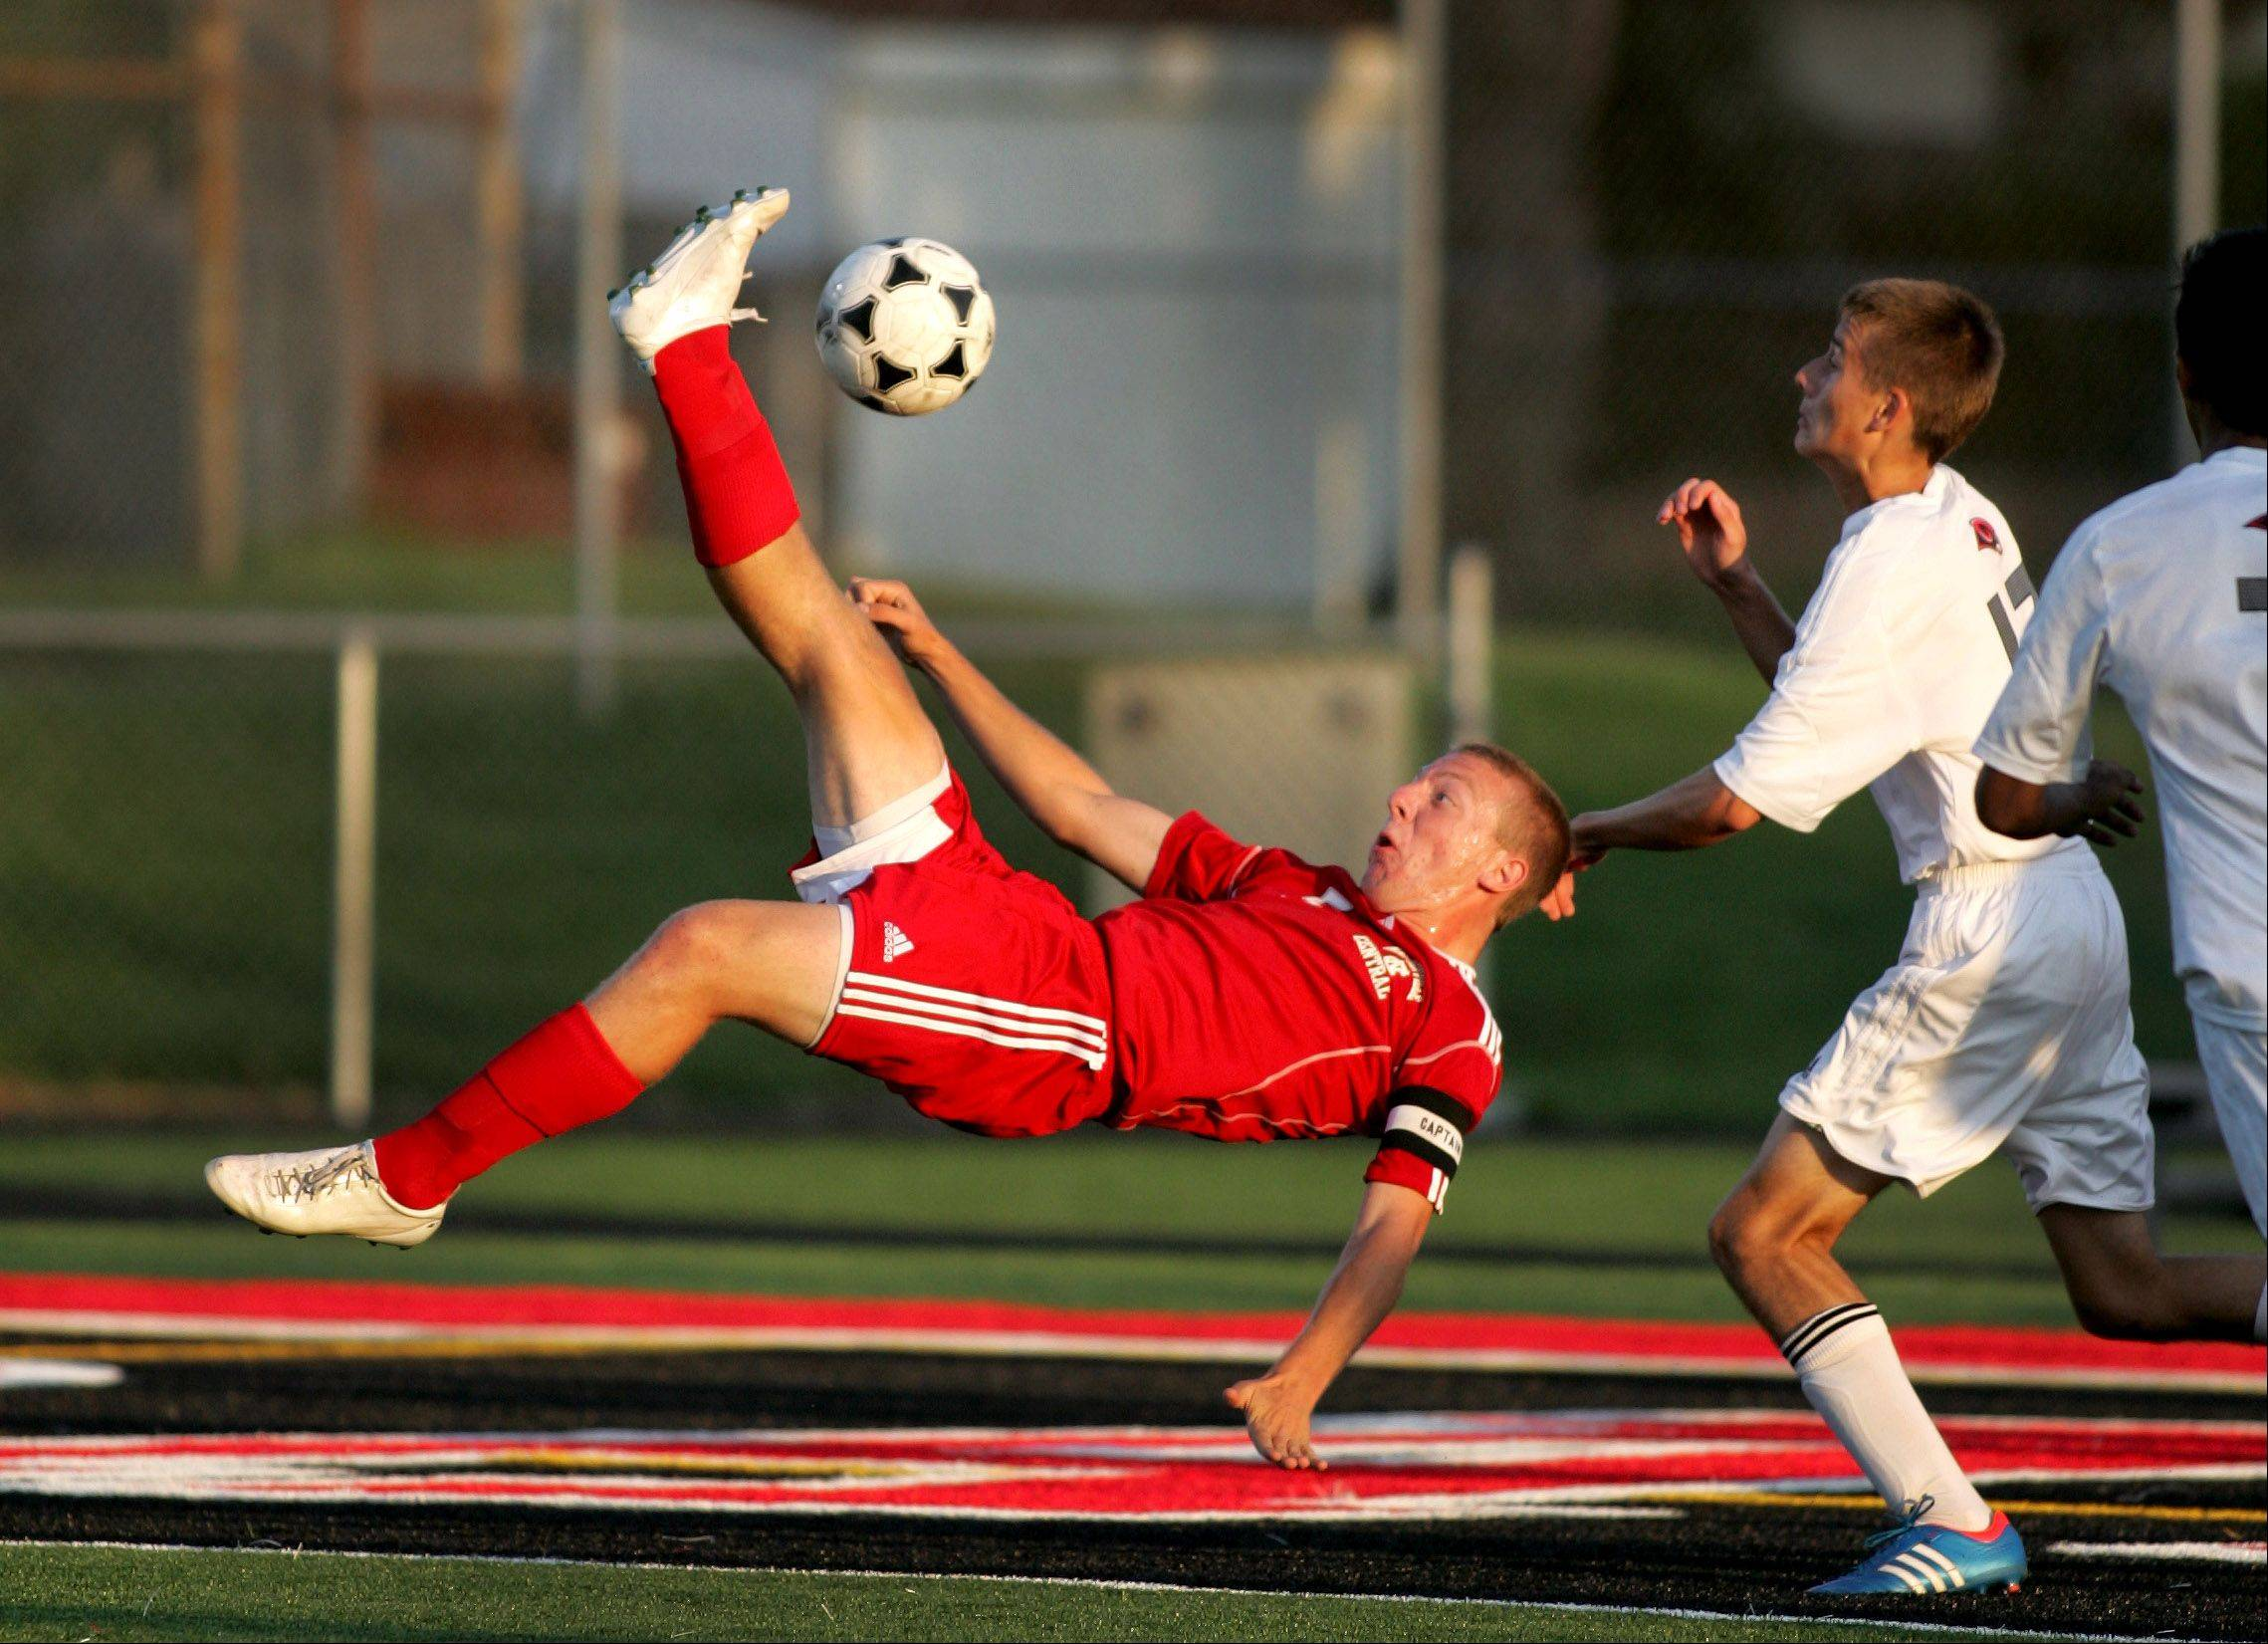 Pat Flynn of Naperville Central attempts to kick it back for a goal over Ivailo Alexandrov of Glenbard East, right, in boys soccer action Tuesday in Lombard.